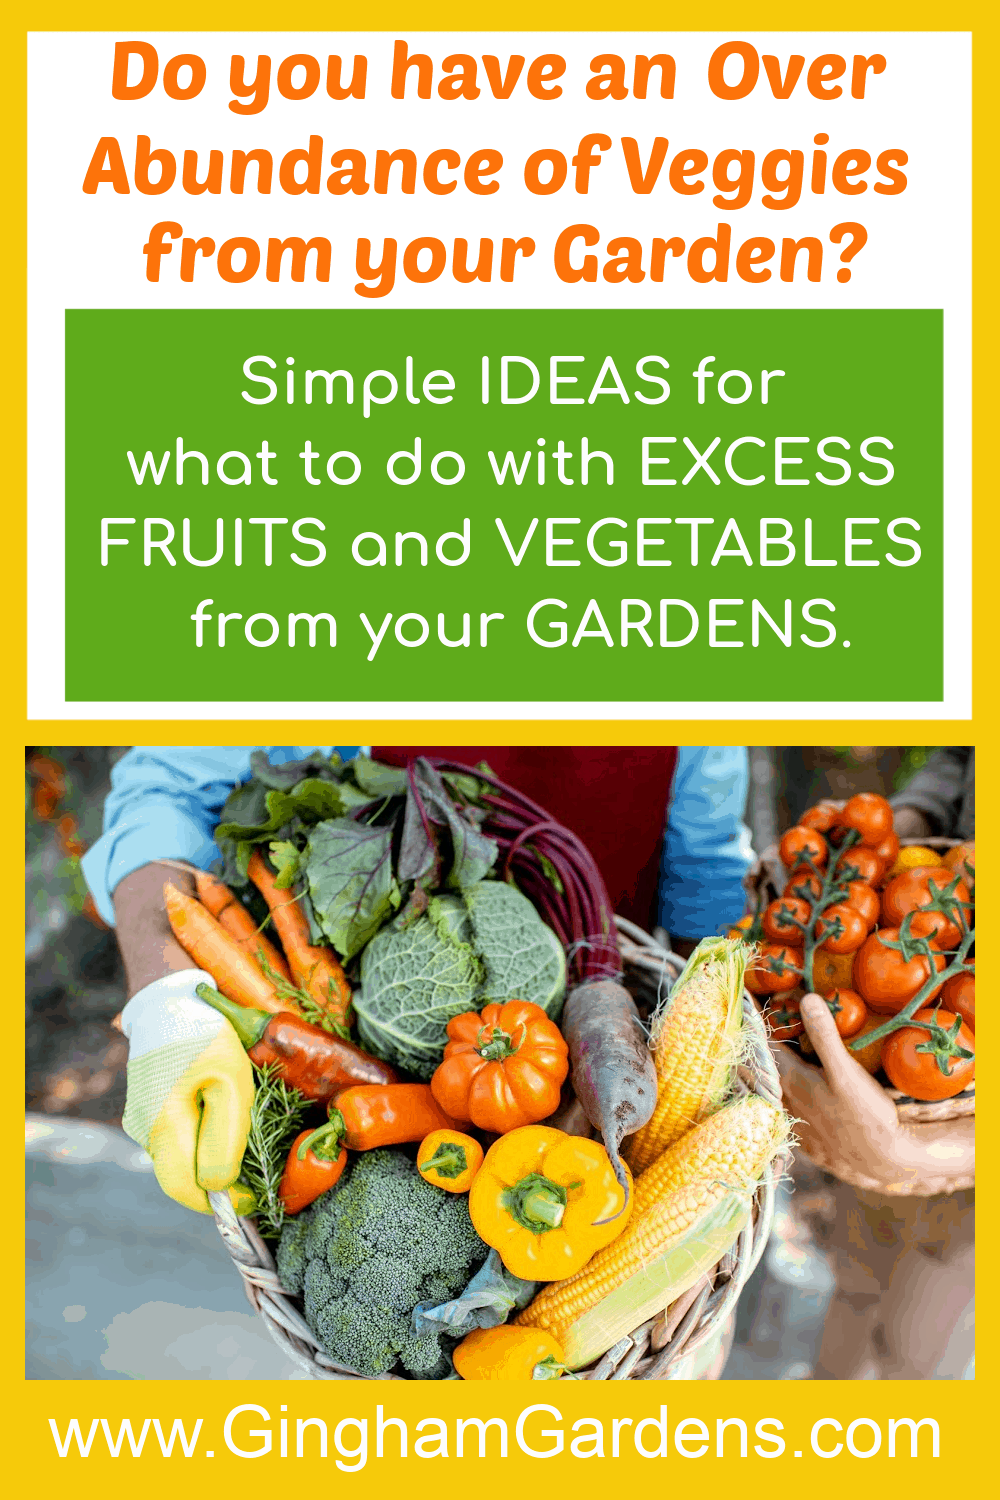 Image of Garden Produce with Text Overlay - What to do with excess fruits and vegetables from your gardens.